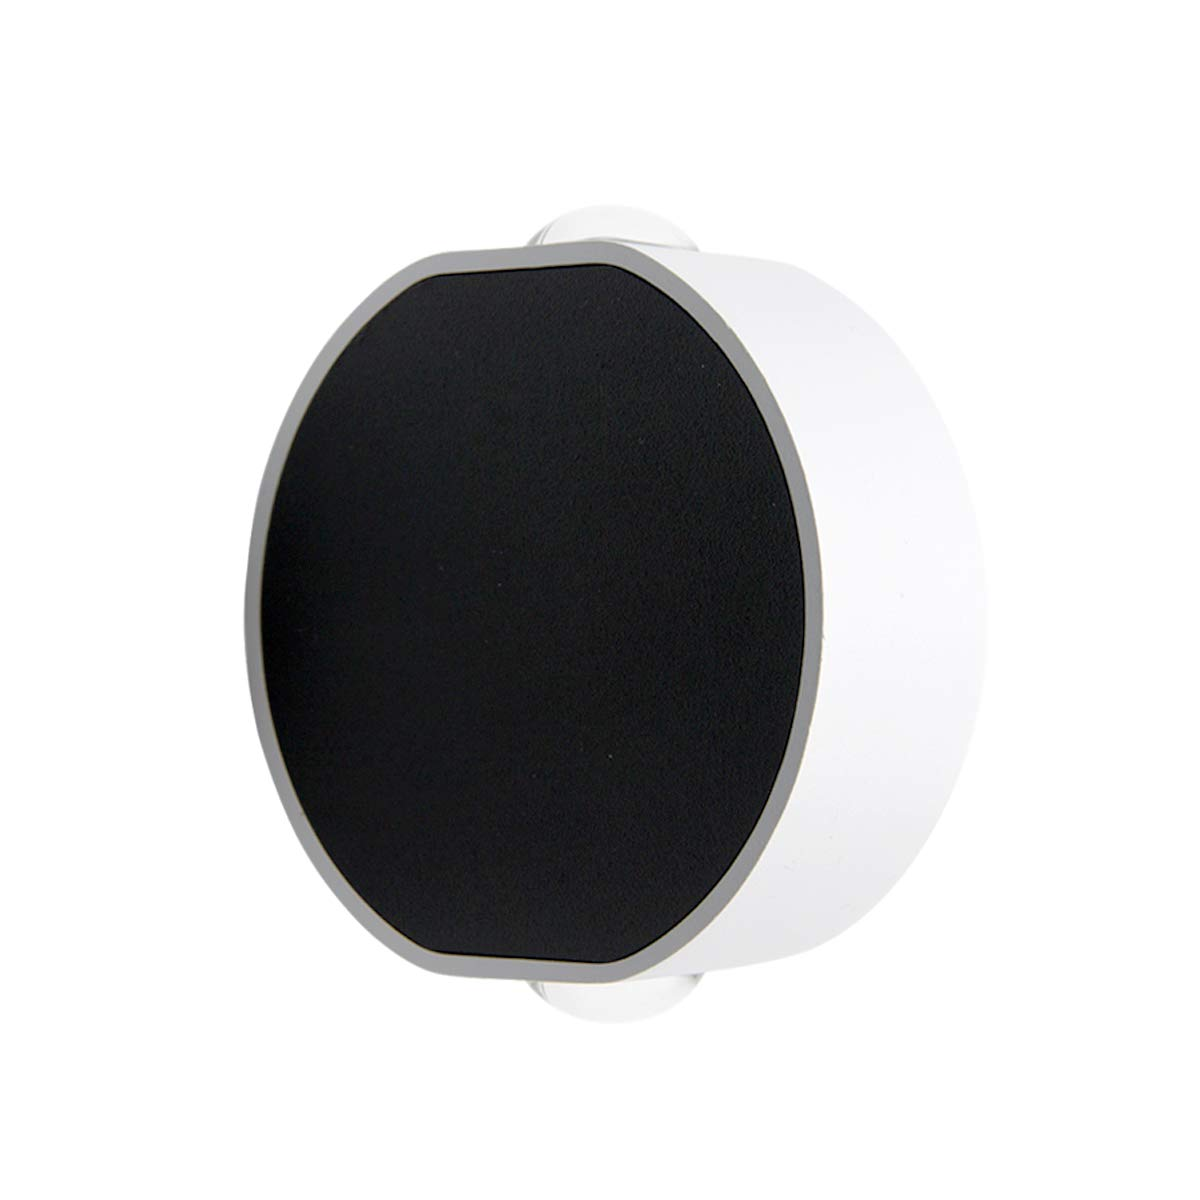 CHMPH 10W LED Wall Lights Wall Lamps Wall Sconce Indoor Lighting Bedroom Corridor Stairs 3000K Warm White Light 10X3.5CM Aluminum up/Down Design (White+Black)